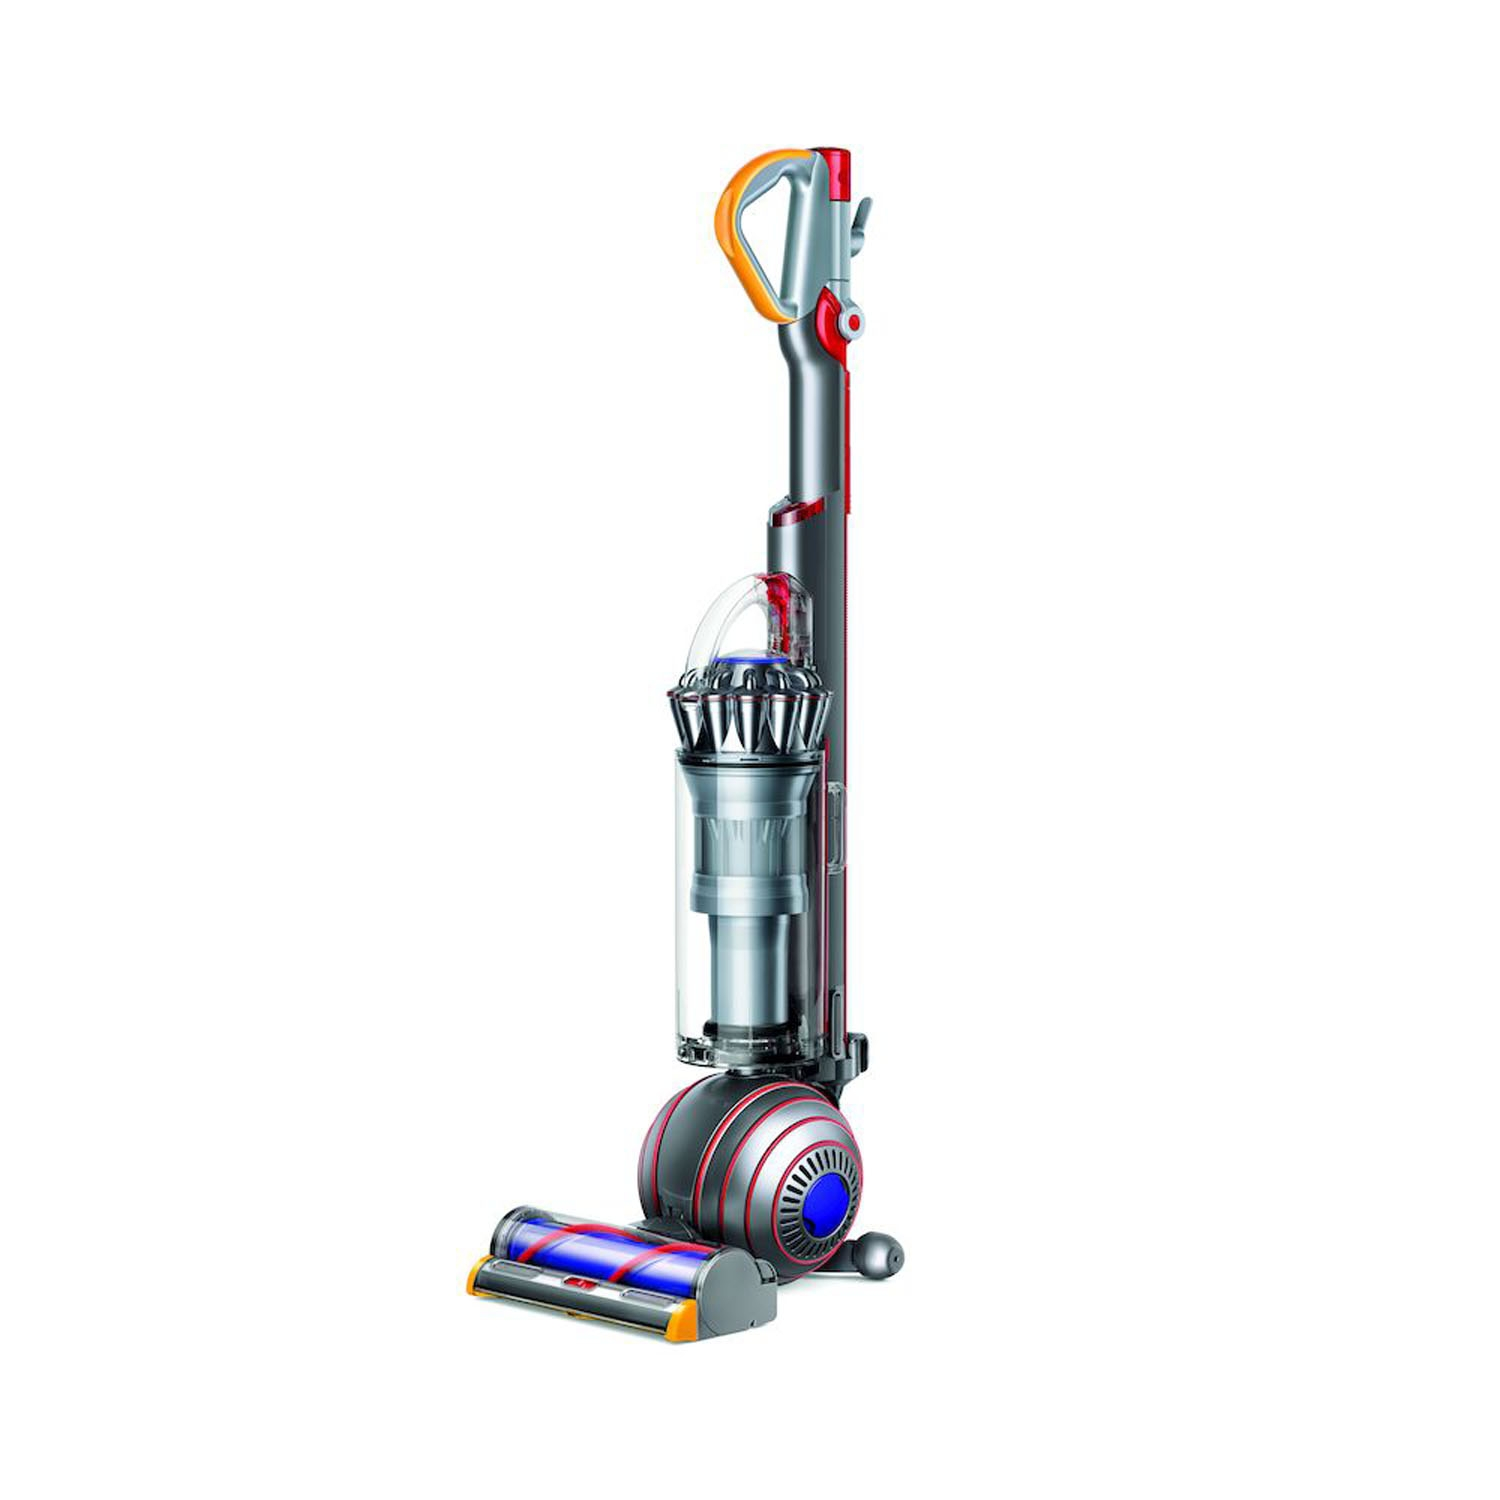 Image of Dyson Ball Animal 2 Upright Vacuum Cleaner